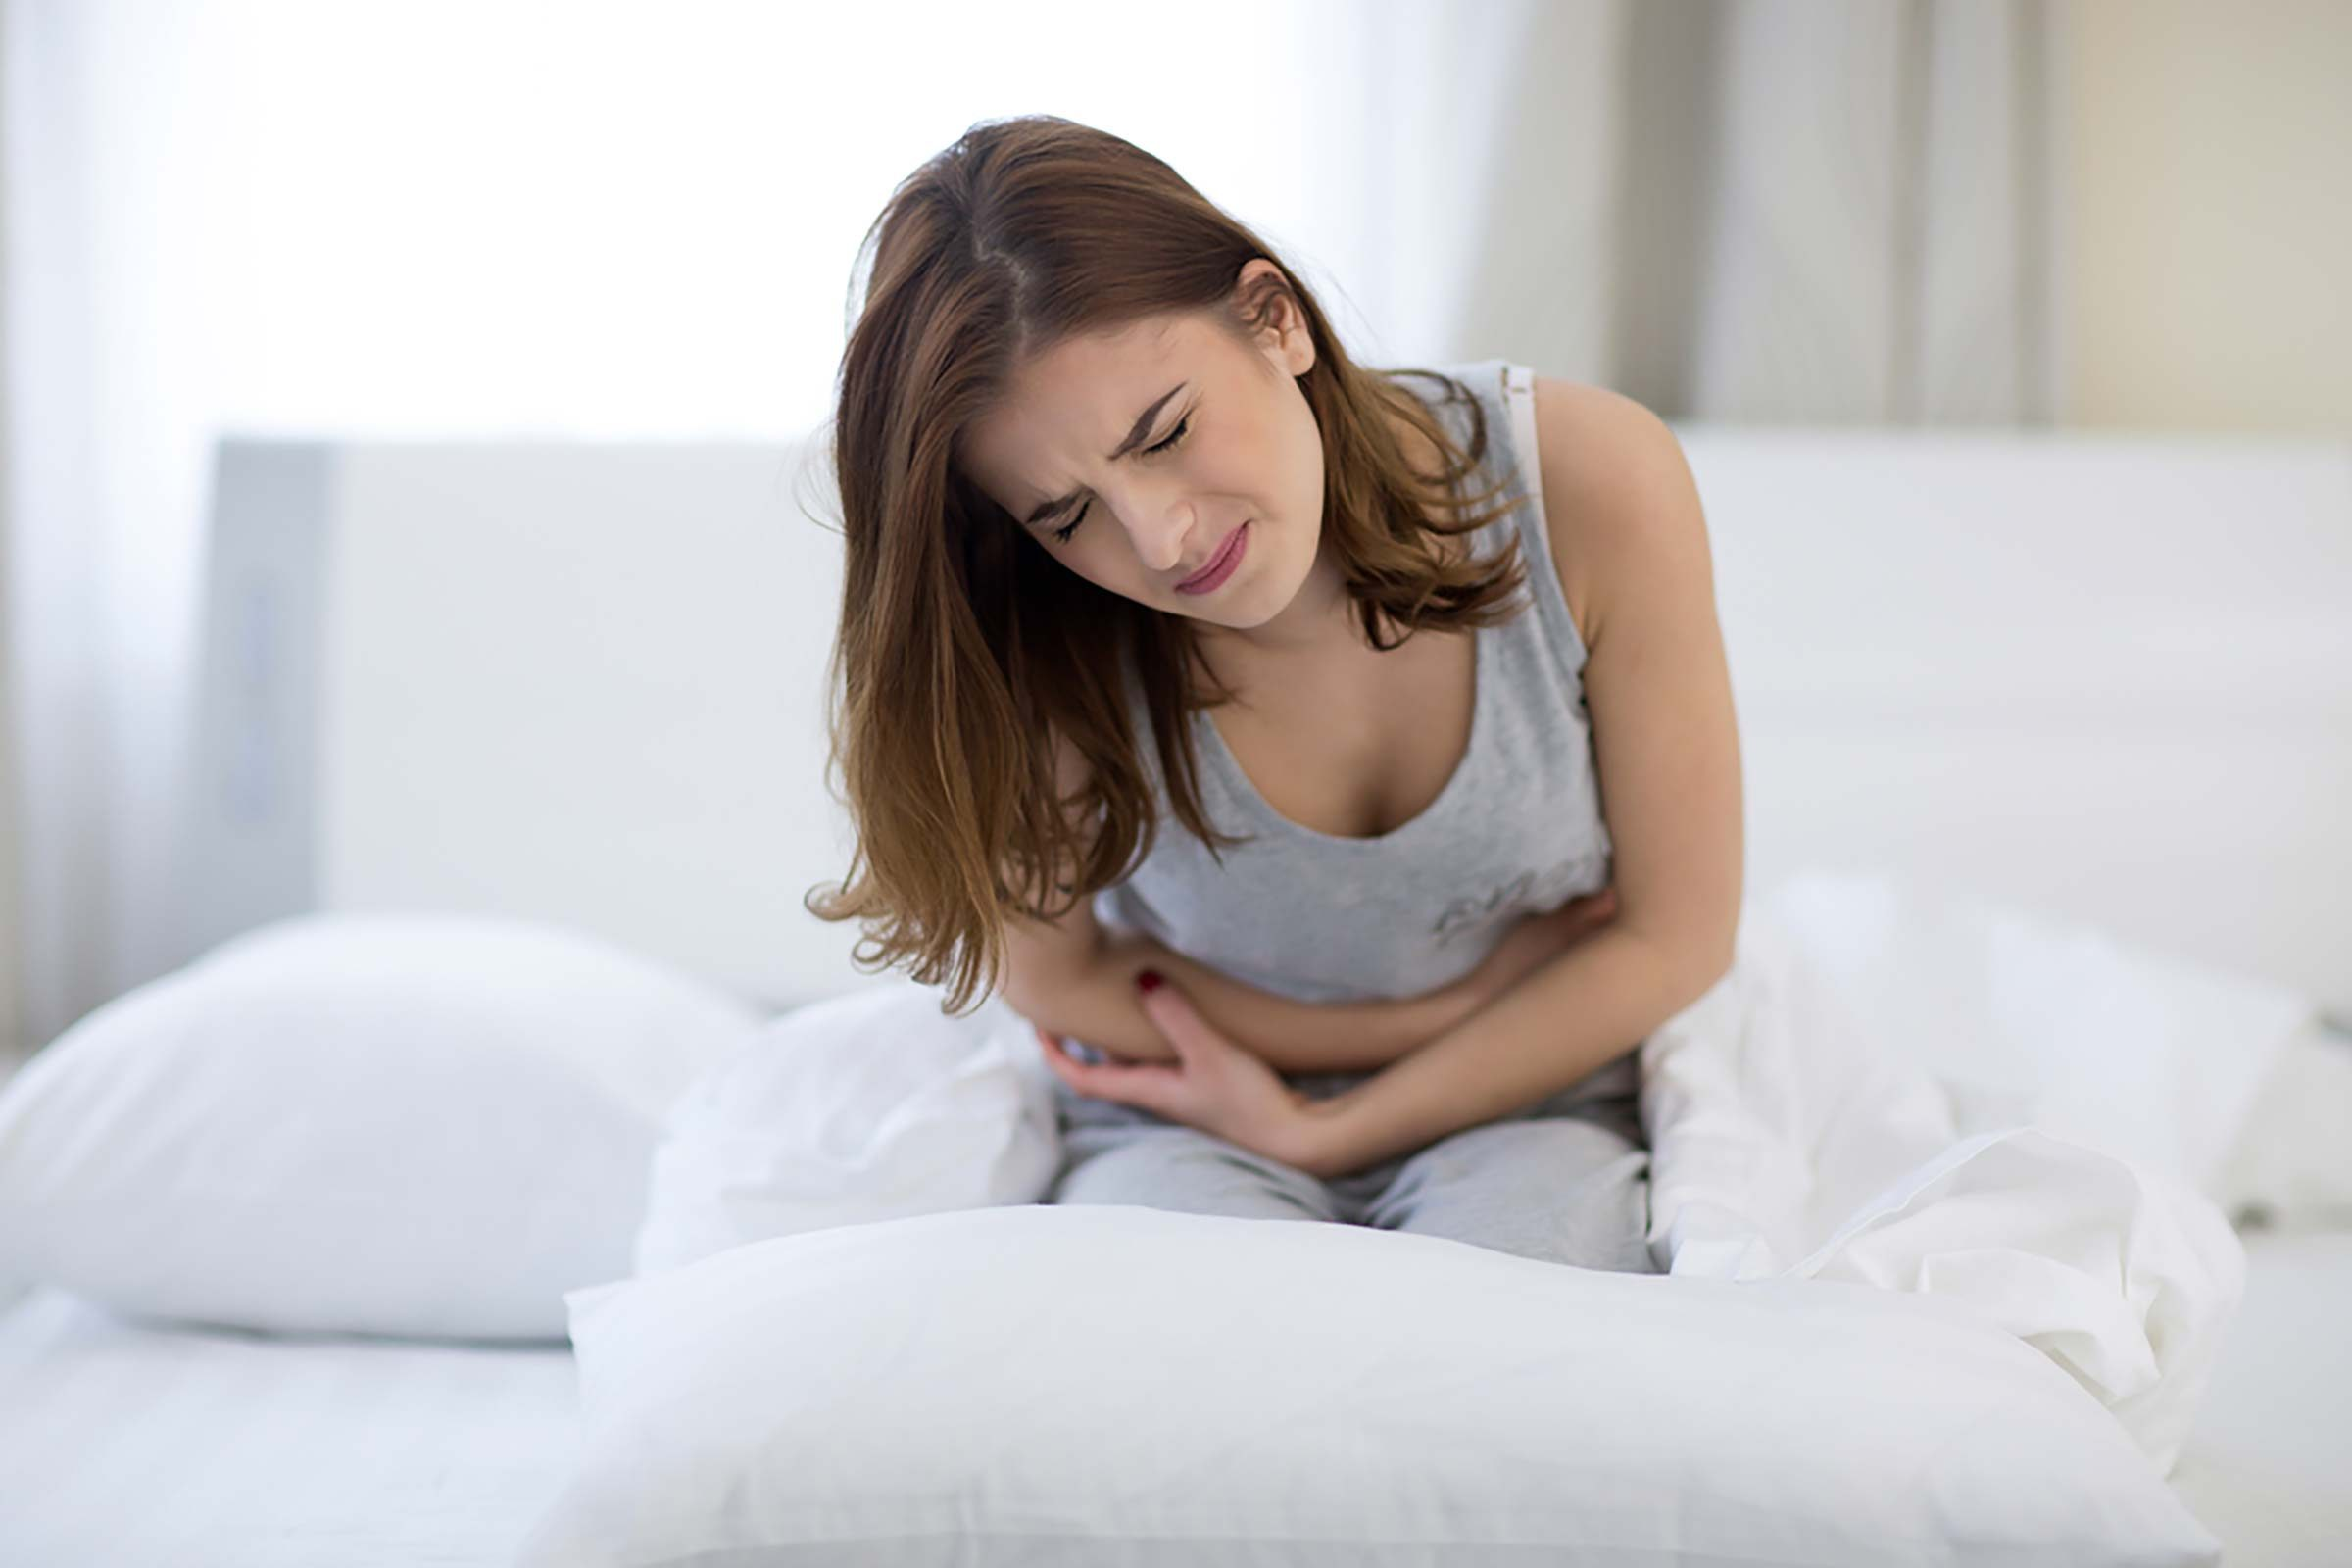 woman doubled over in pain in bed